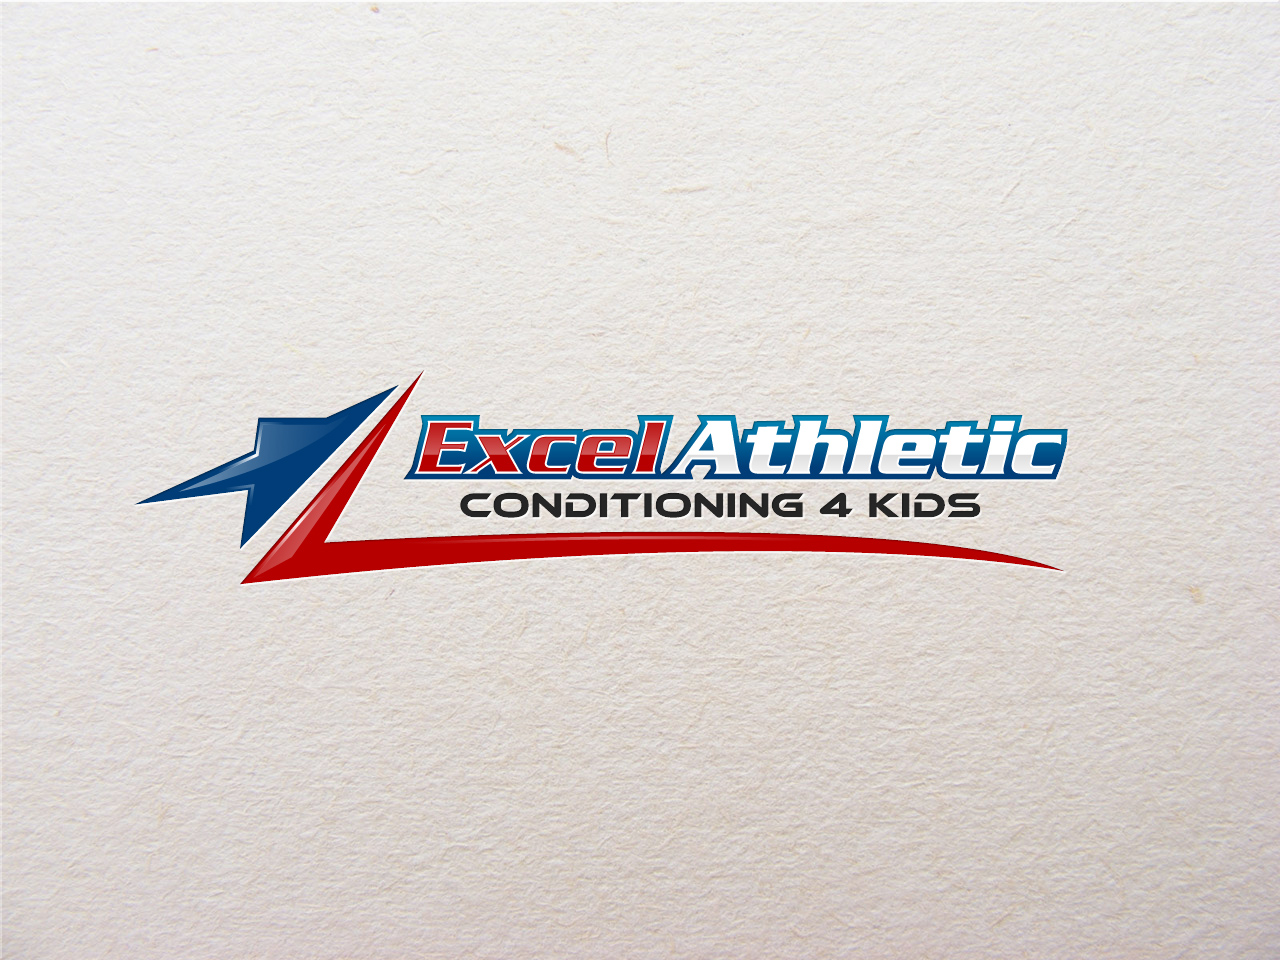 Logo Design by jpbituin - Entry No. 21 in the Logo Design Contest Artistic Logo Design for Excel Athletic Conditioning 4 kids.